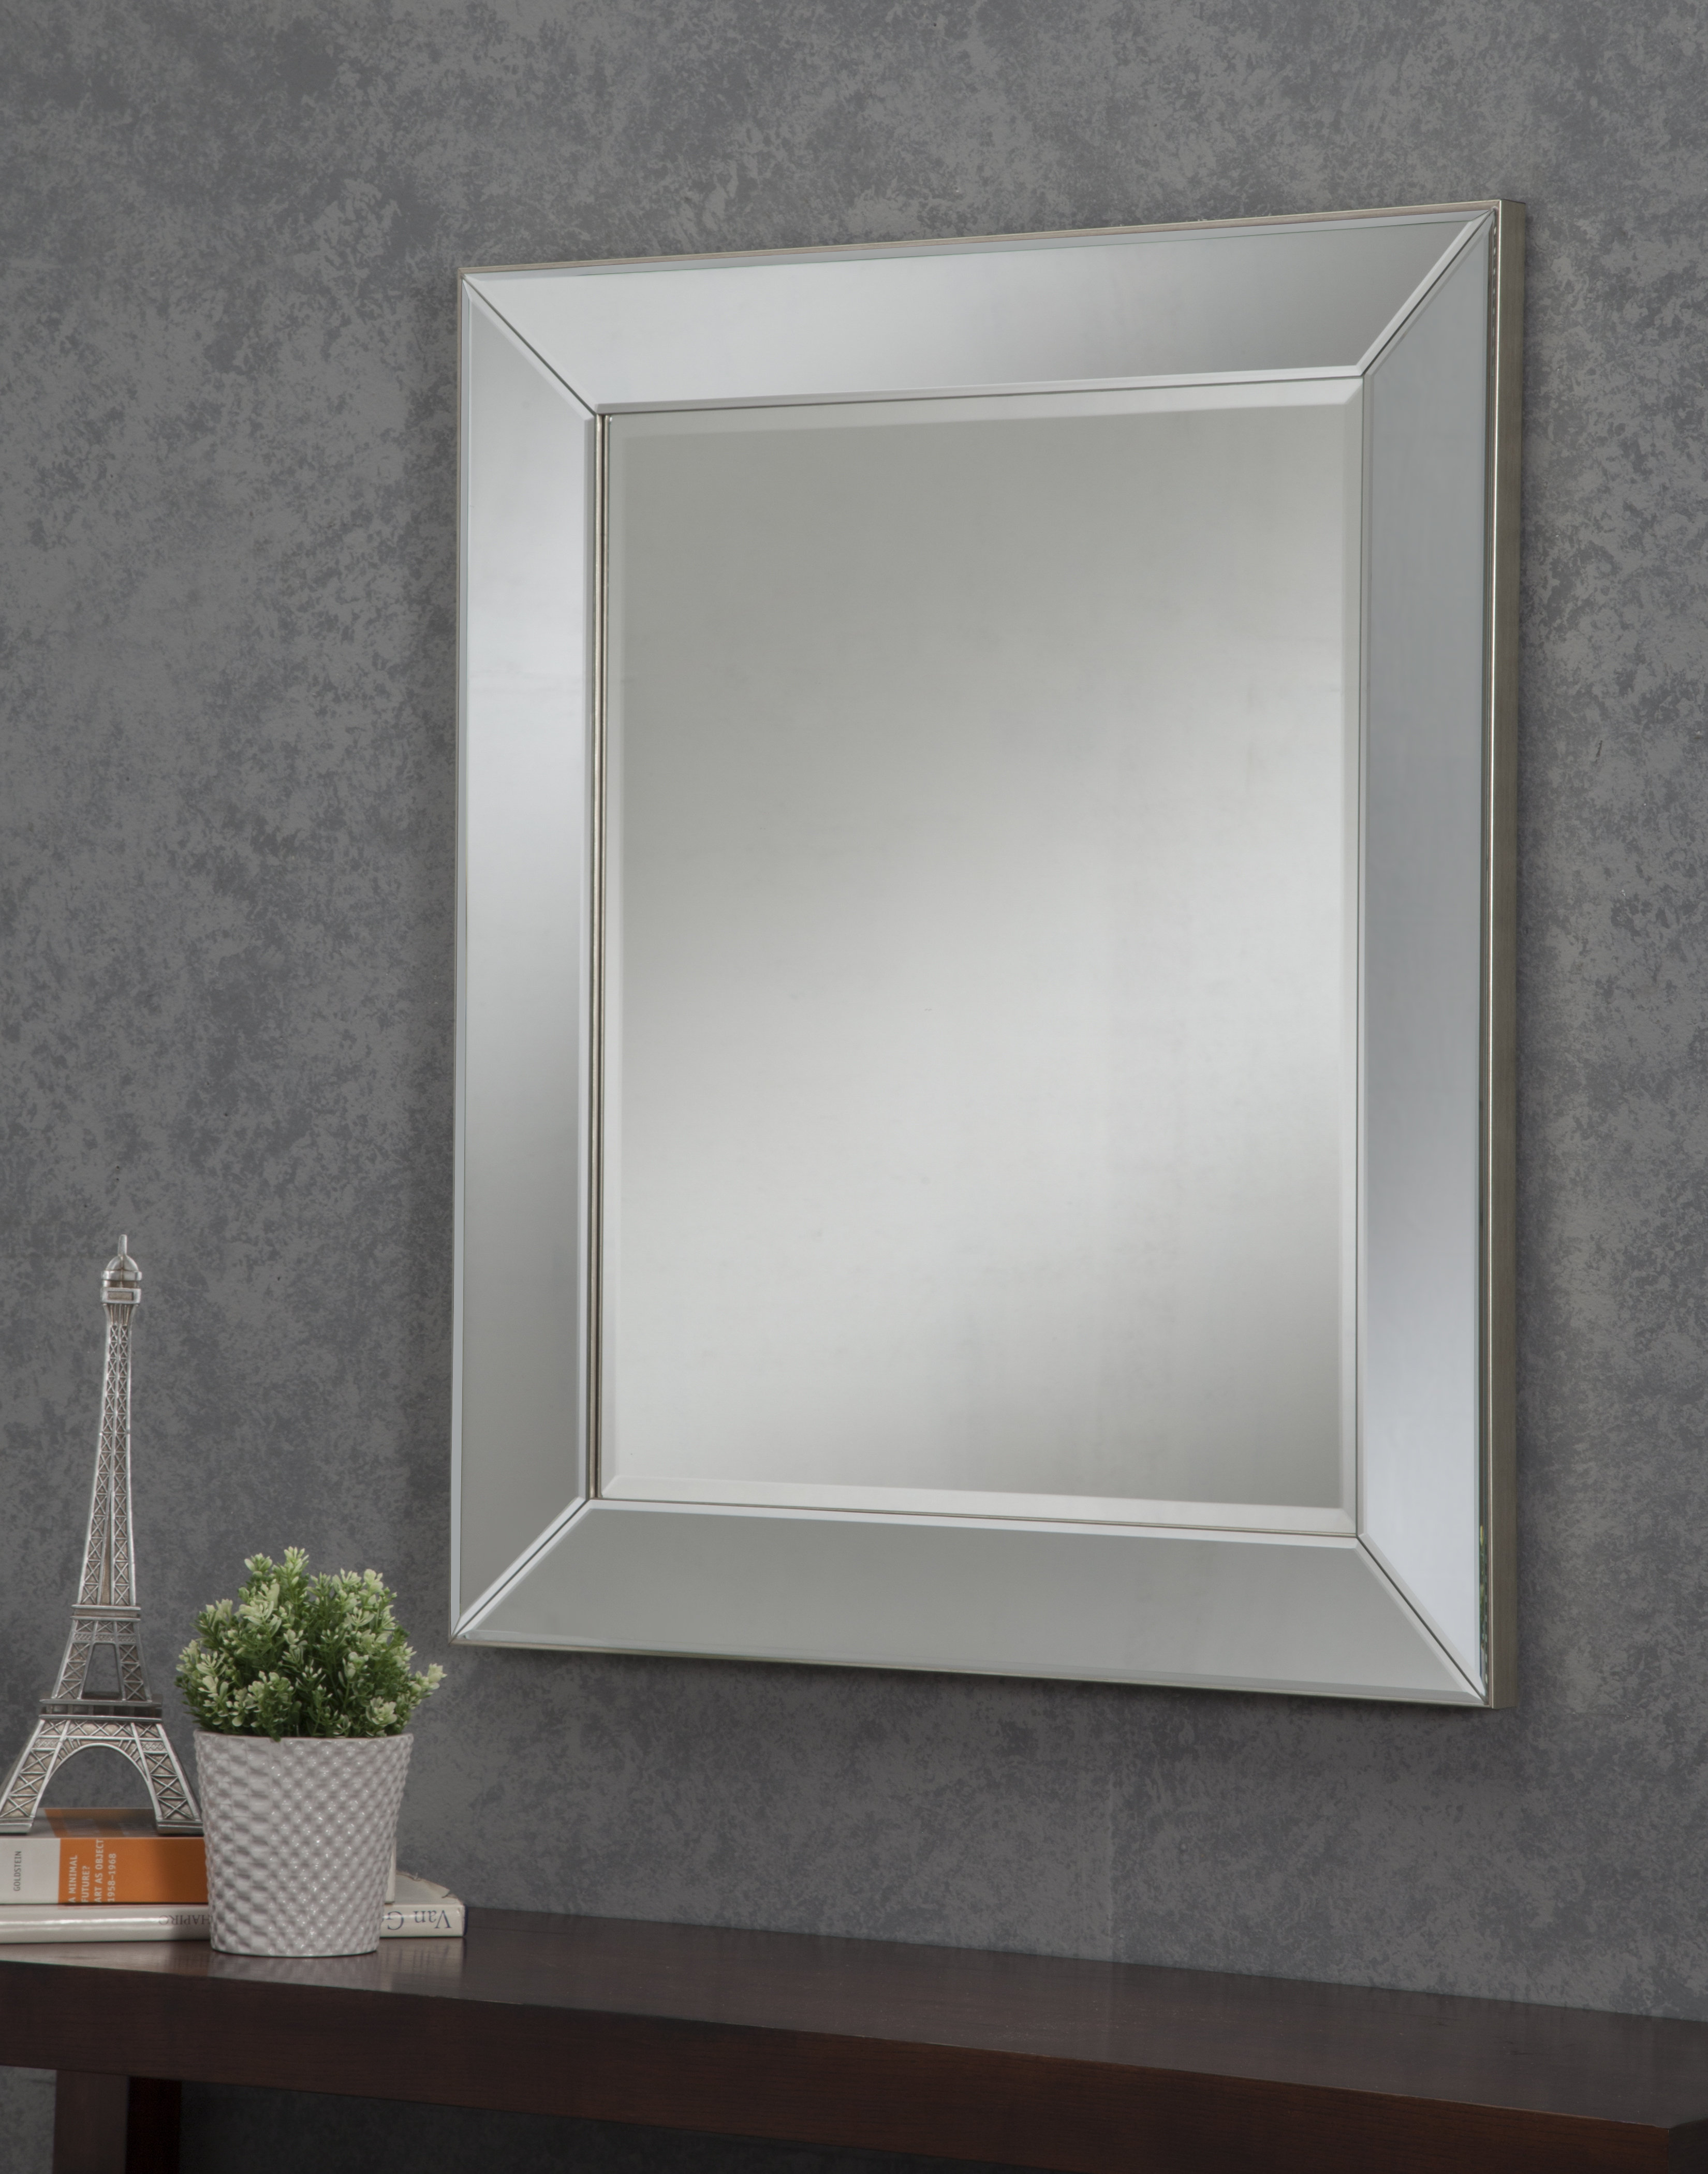 Pennsburg Rectangle Wall Mirror Intended For Popular Nightstand Mirror (View 10 of 20)